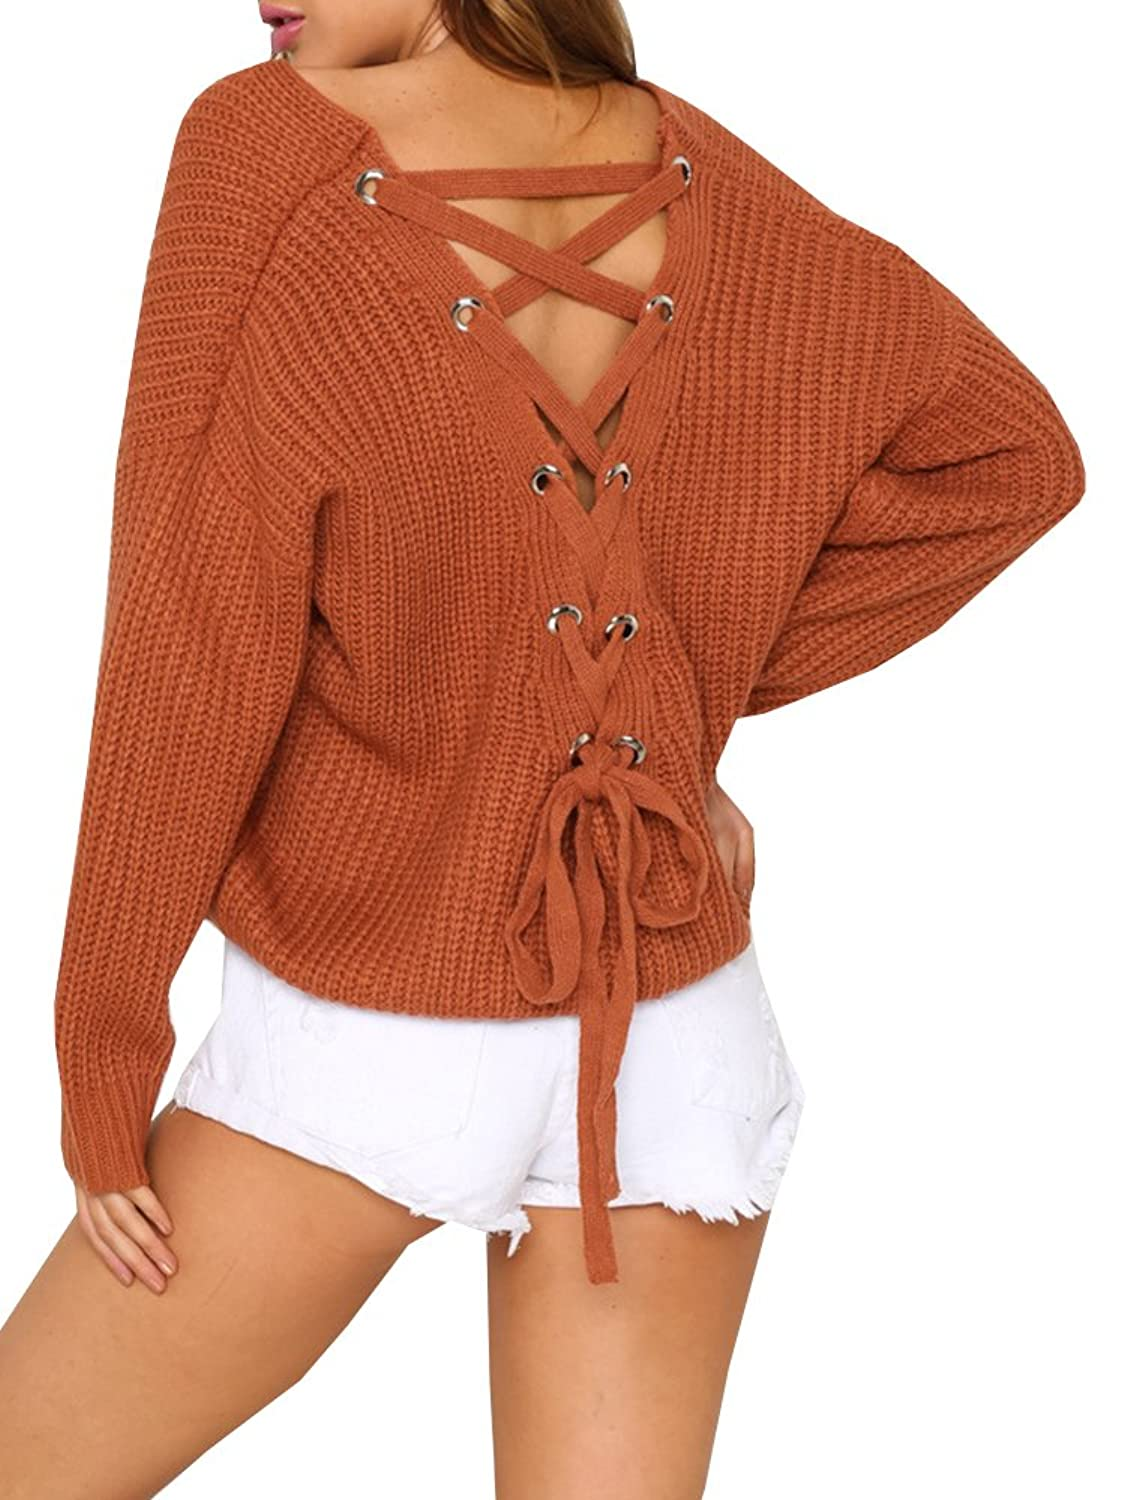 Bigyonger Women s Lace Up Back V Neck Long Sleeve Knit Pullover Loose  Sweater Jumper 6b58c4d28